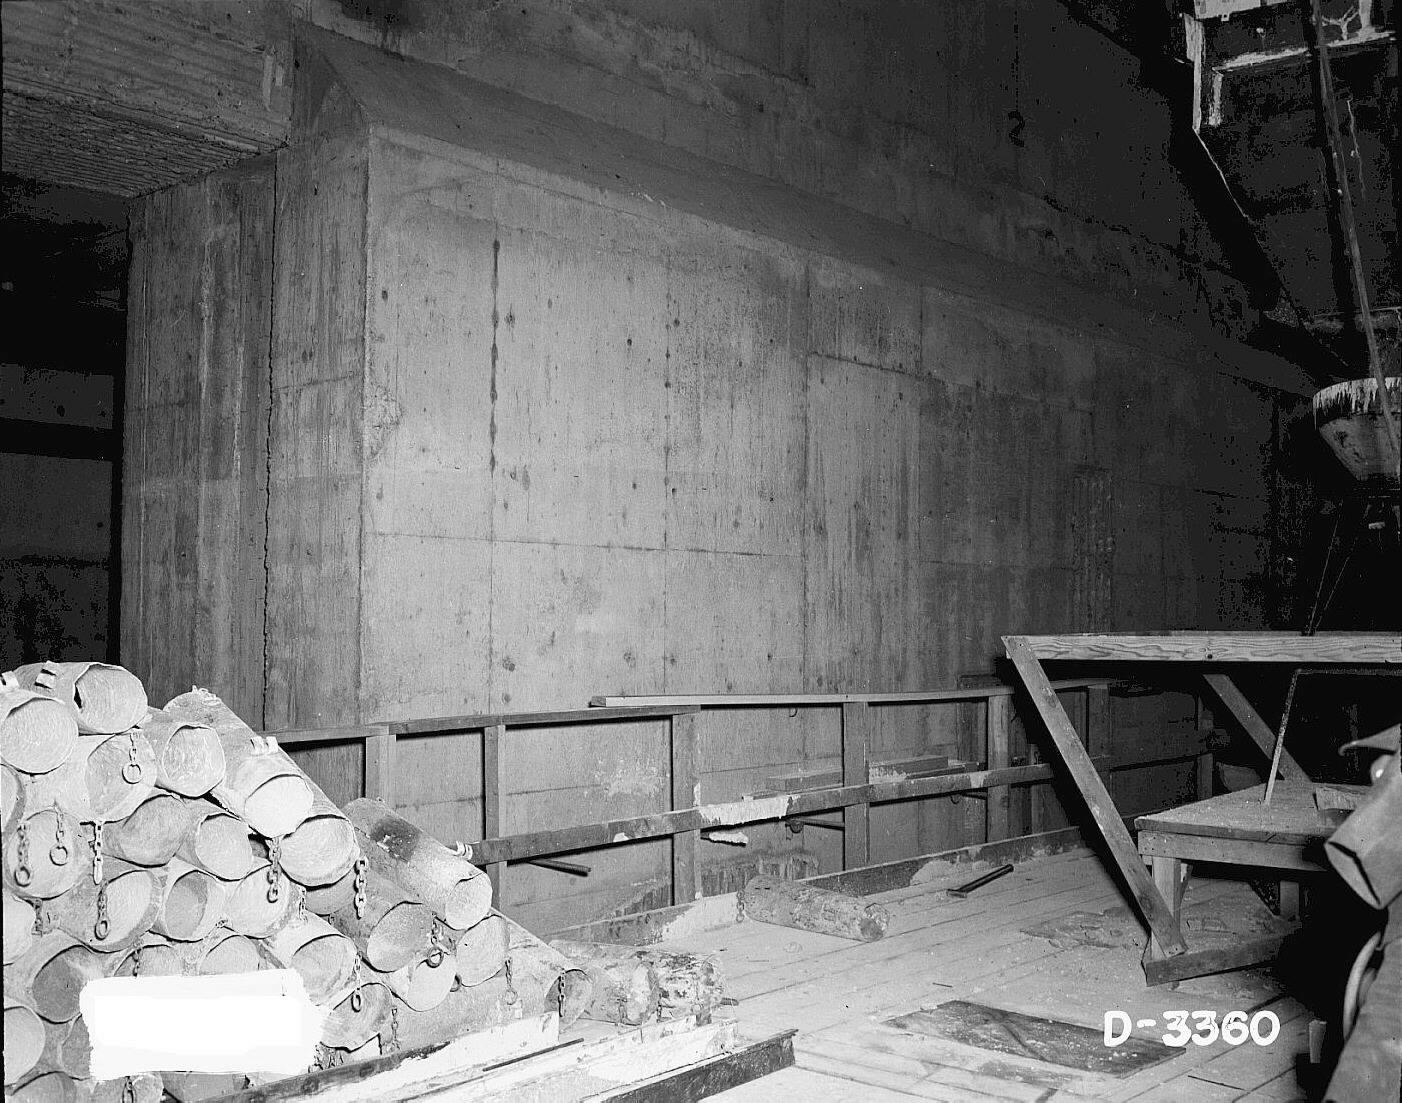 ... 221 T Canyon Under Construction Thick Walls (293031 Bytes)